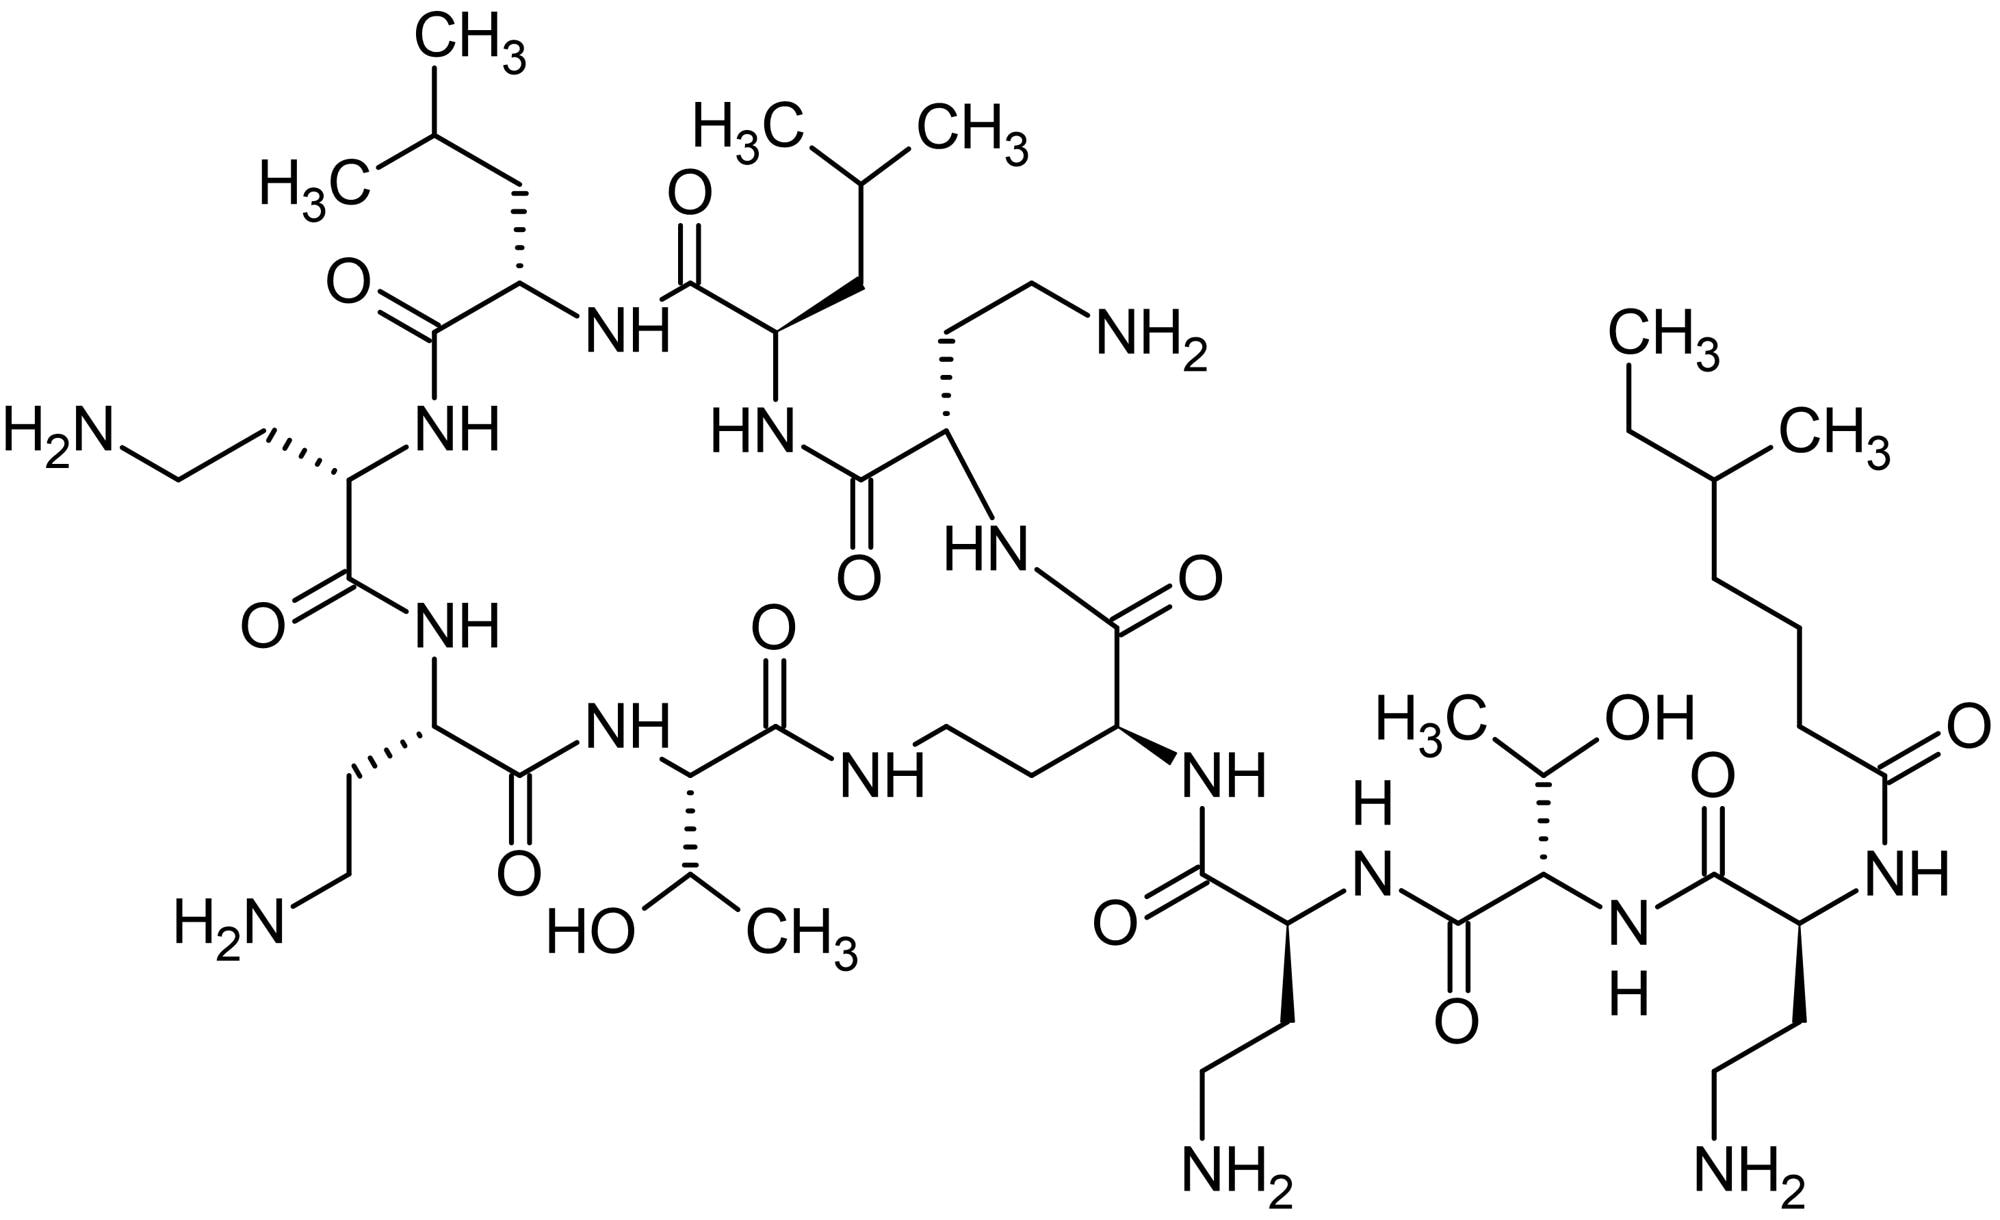 Chemical Structure - Colistin sulfate, Cationic polypeptide antibiotic (ab143385)